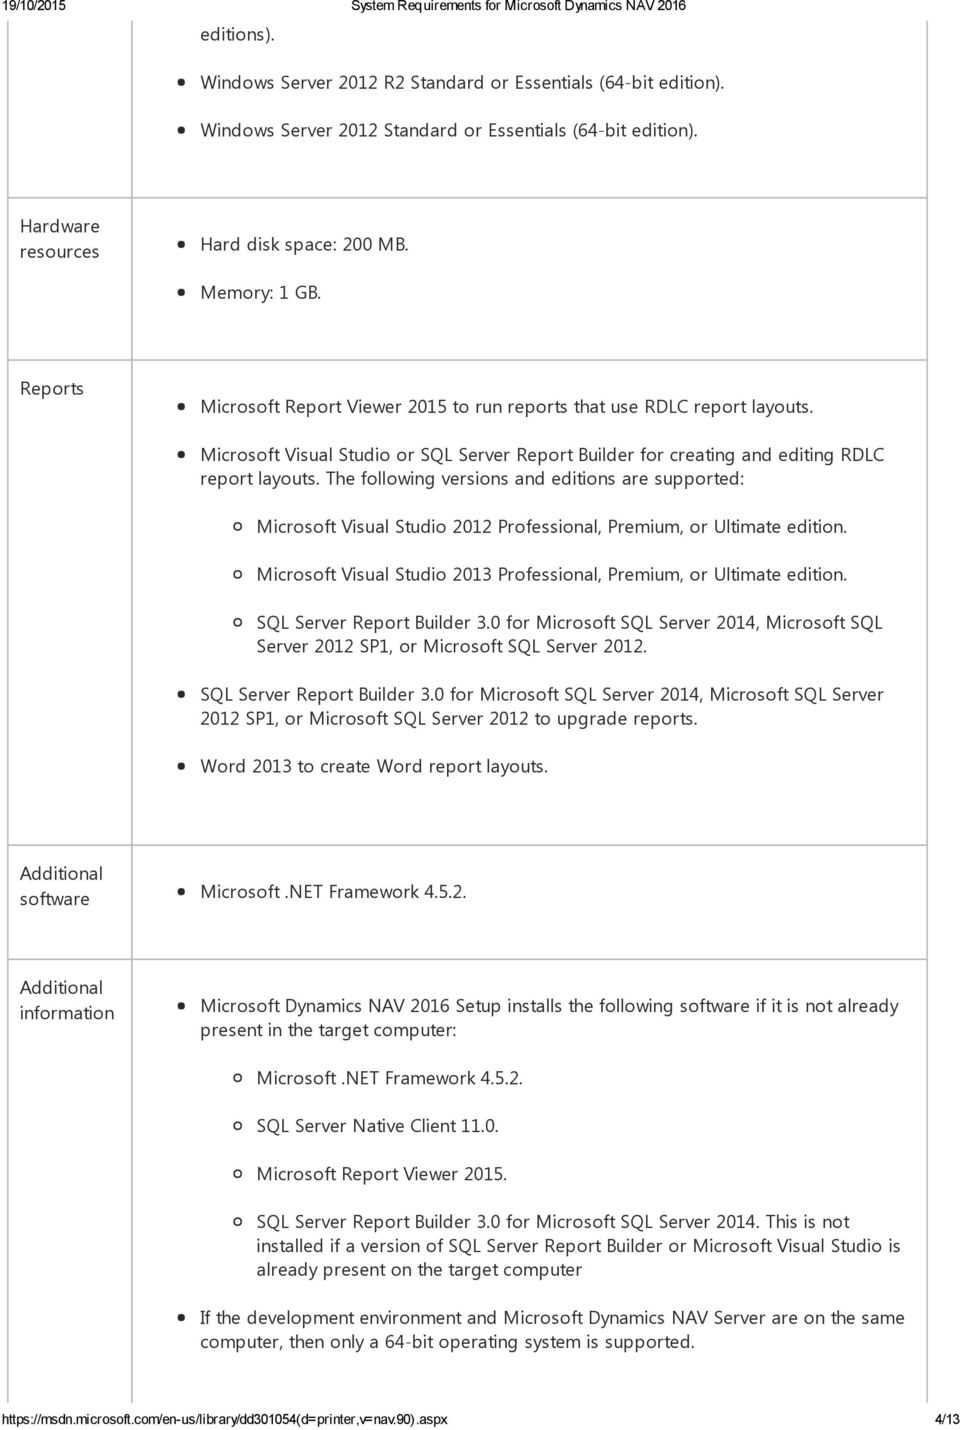 System Requirements for Microsoft Dynamics NAV PDF